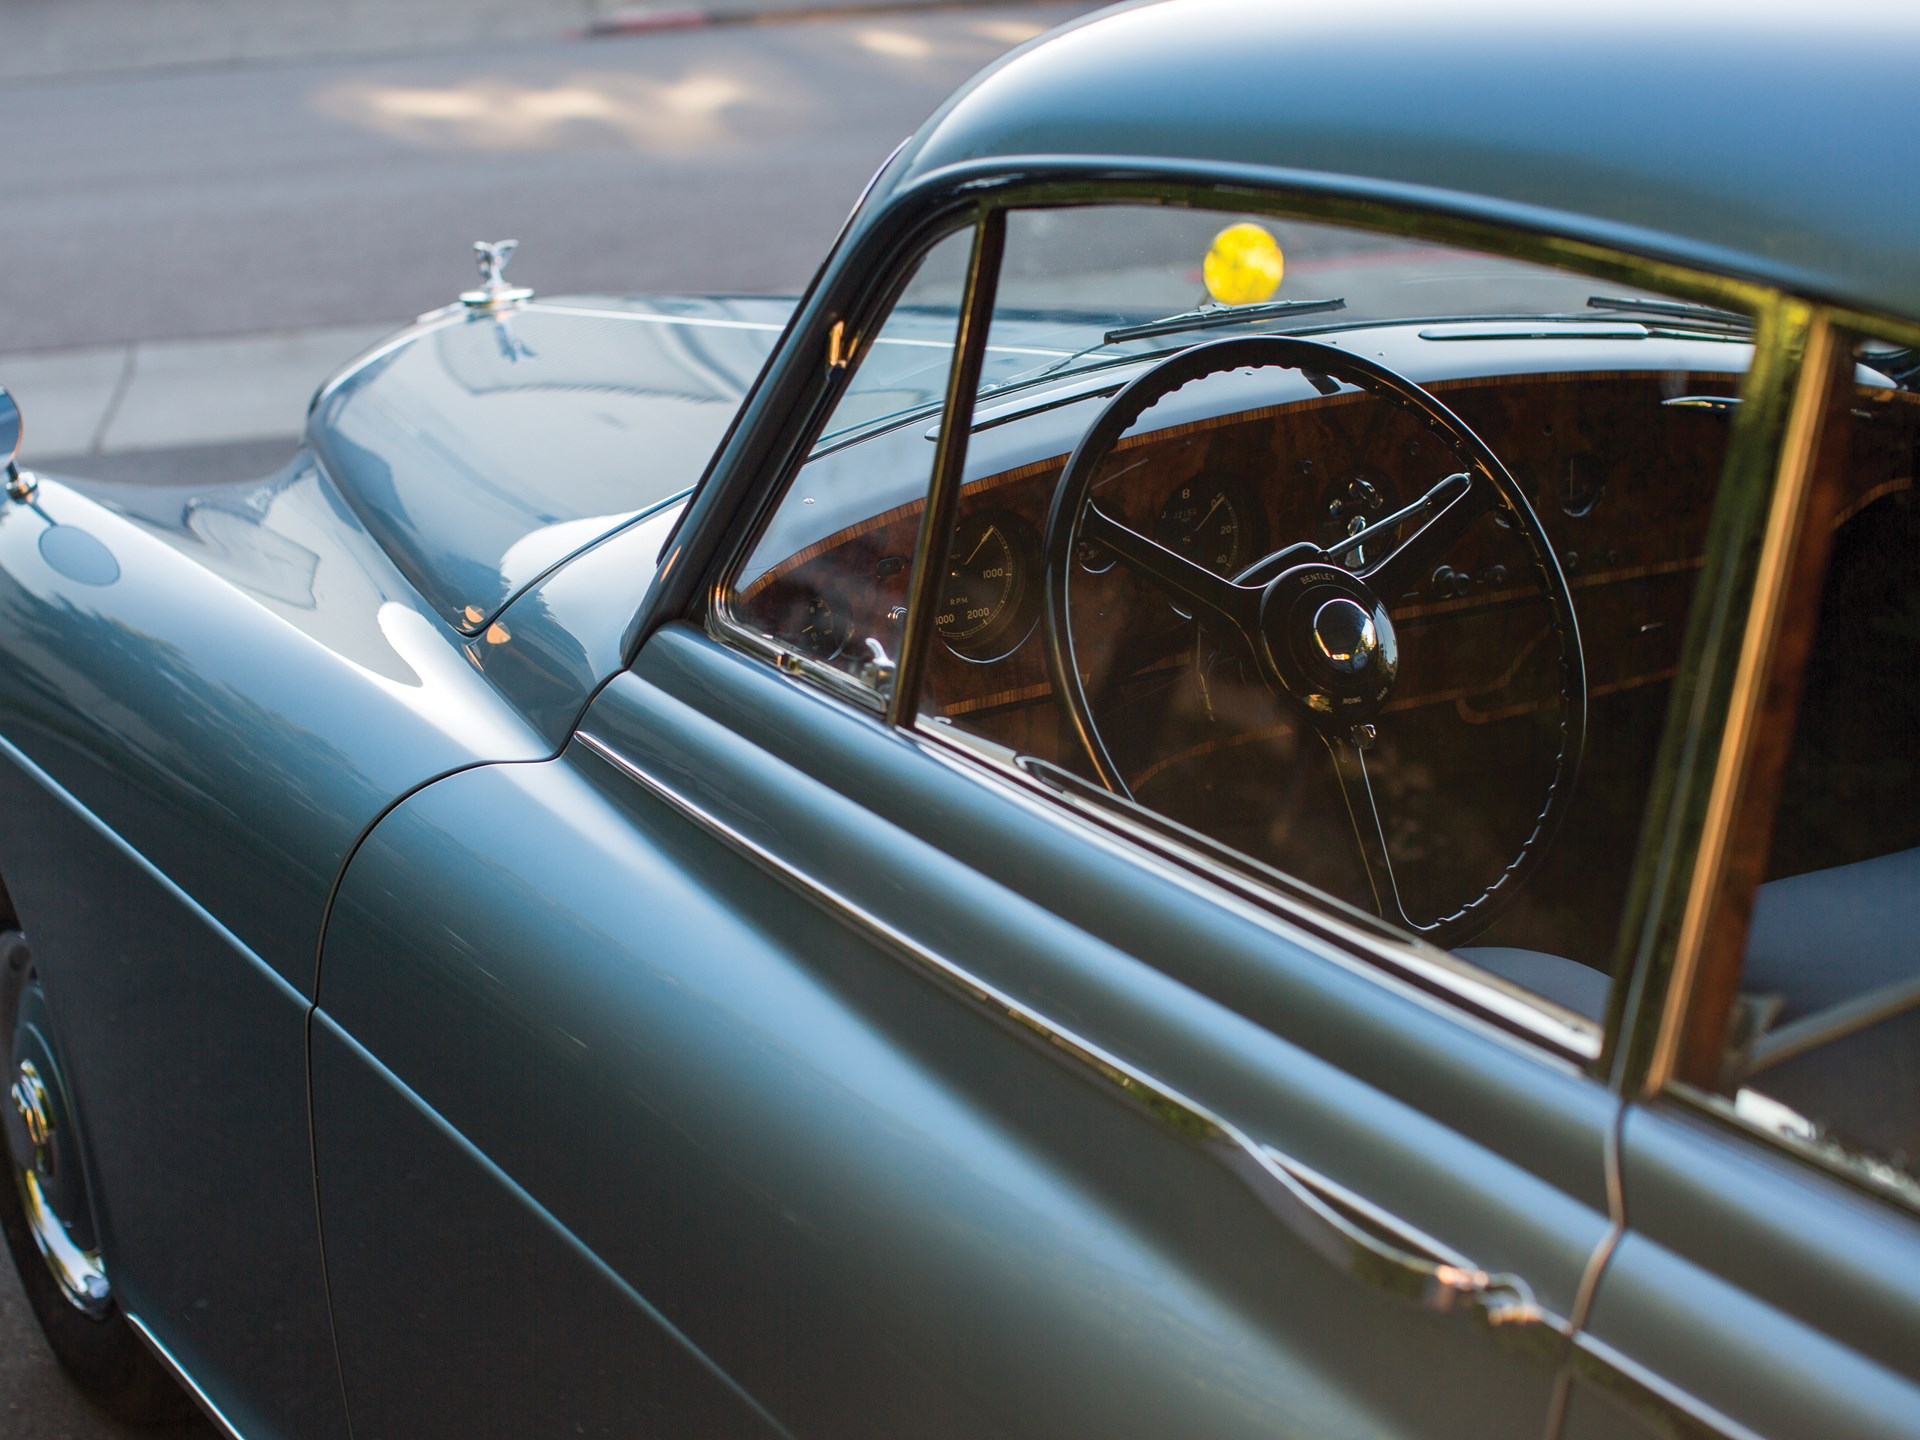 1954 Bentley R-Type Continental Fastback Sports Saloon by H.J. Mulliner